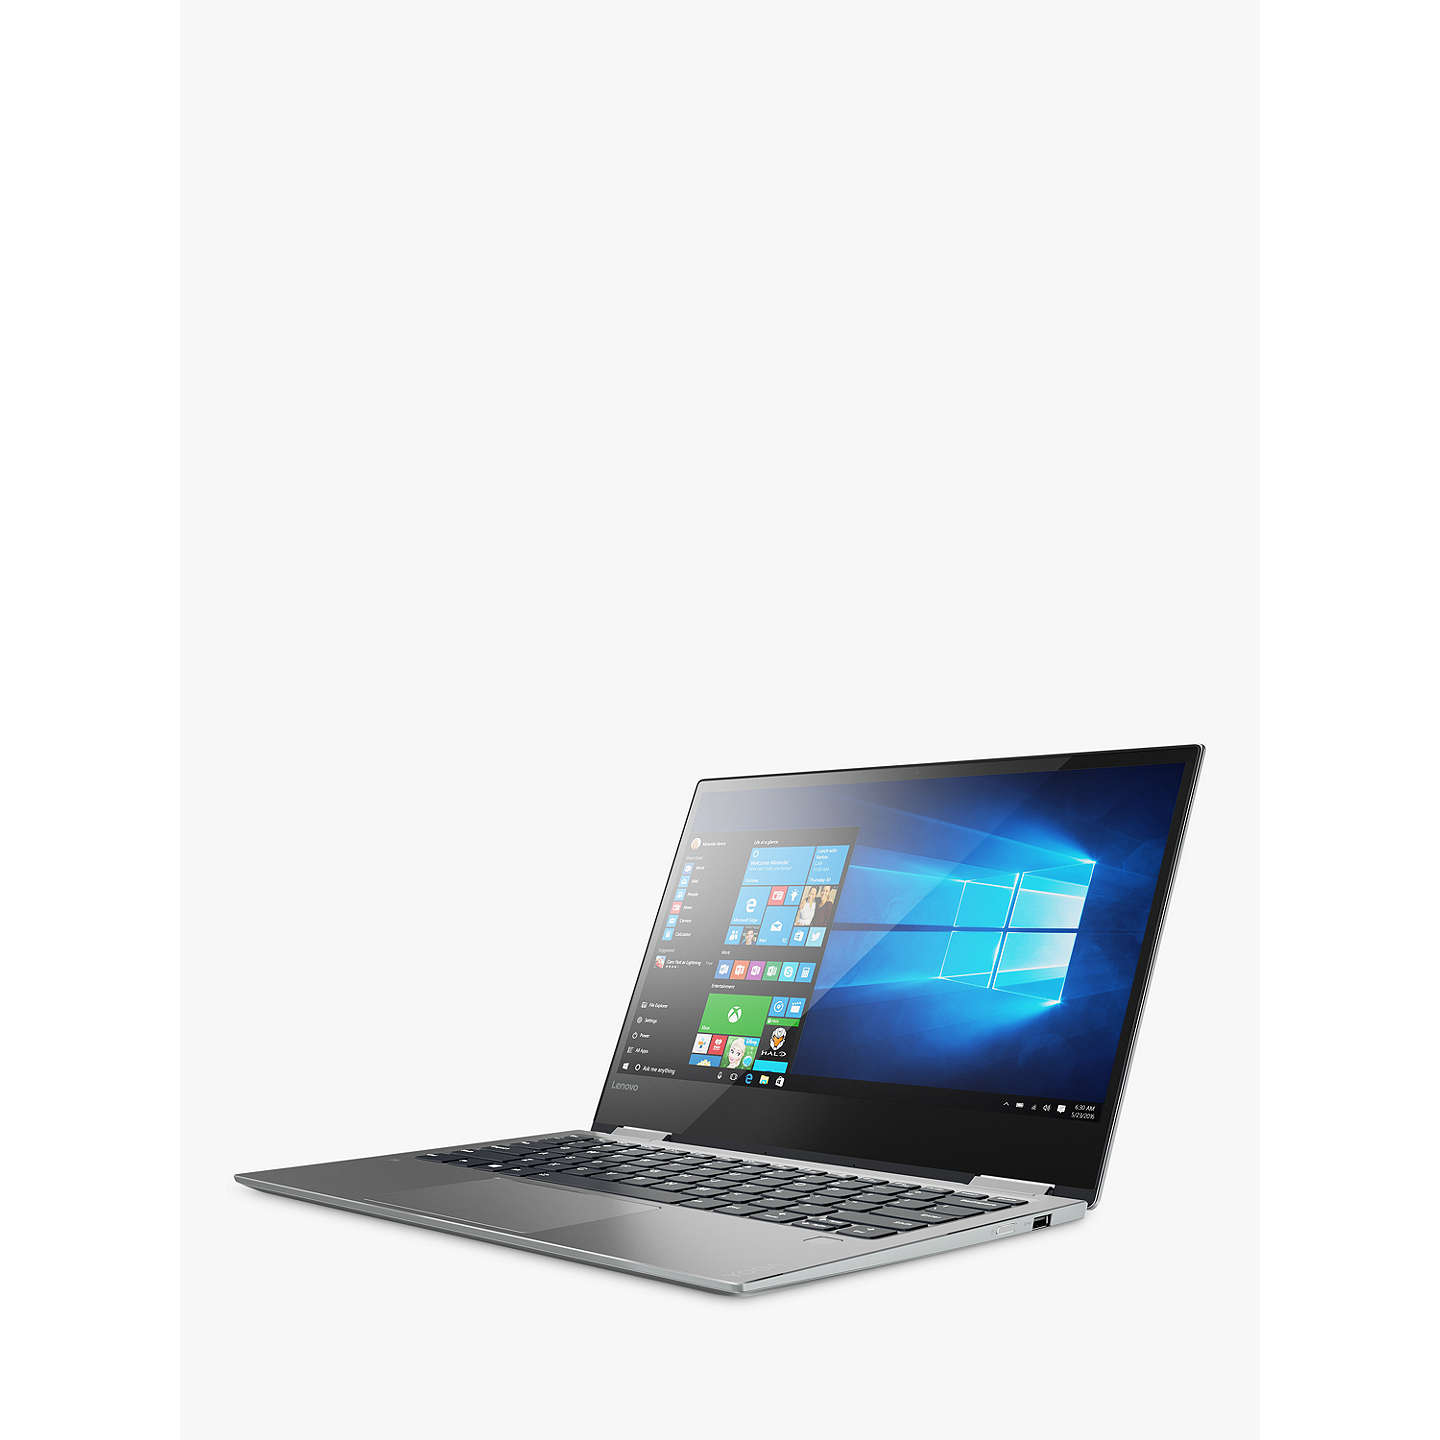 Lenovo Yoga 720 Convertible Laptop With Active Pen, Intel